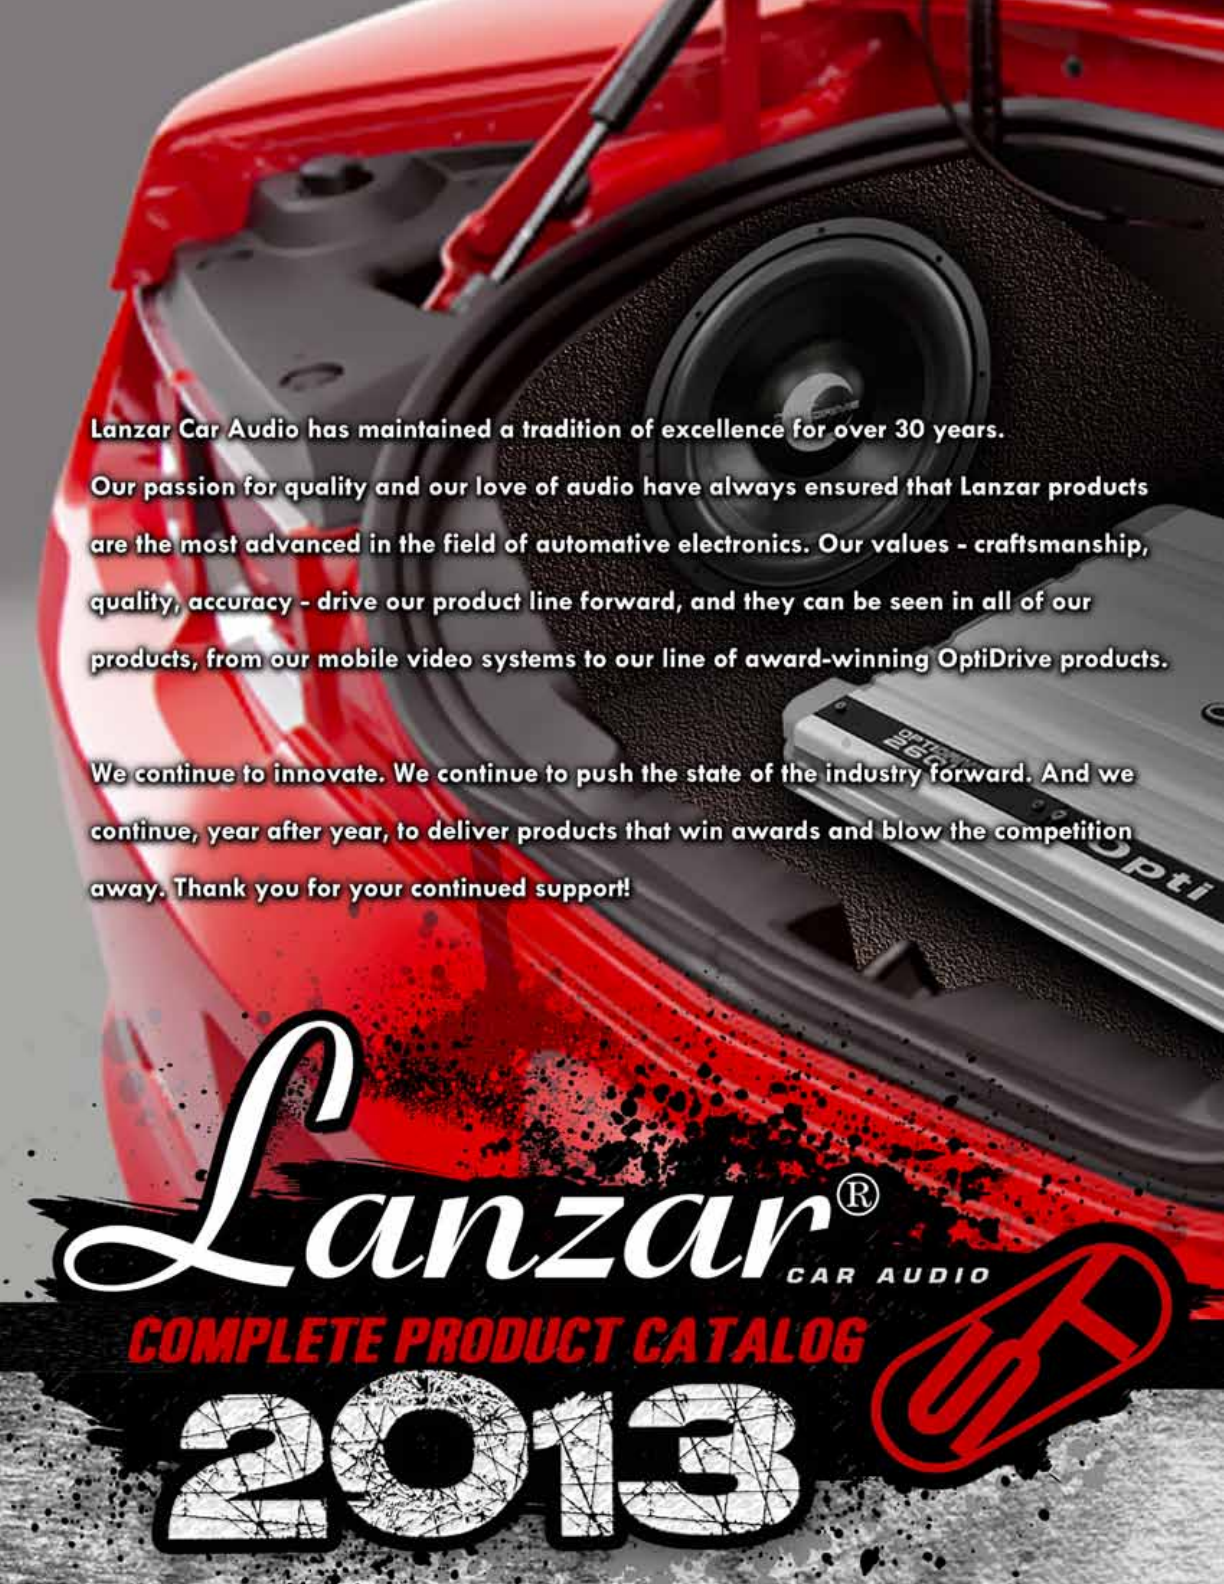 Lanzar Speakers Installation Instructions Max Mxa224 Catalog Ampkit4 4 Gauge Contaq Amplifier Wiring Kit Parts Touchscreen In Dash Receivers